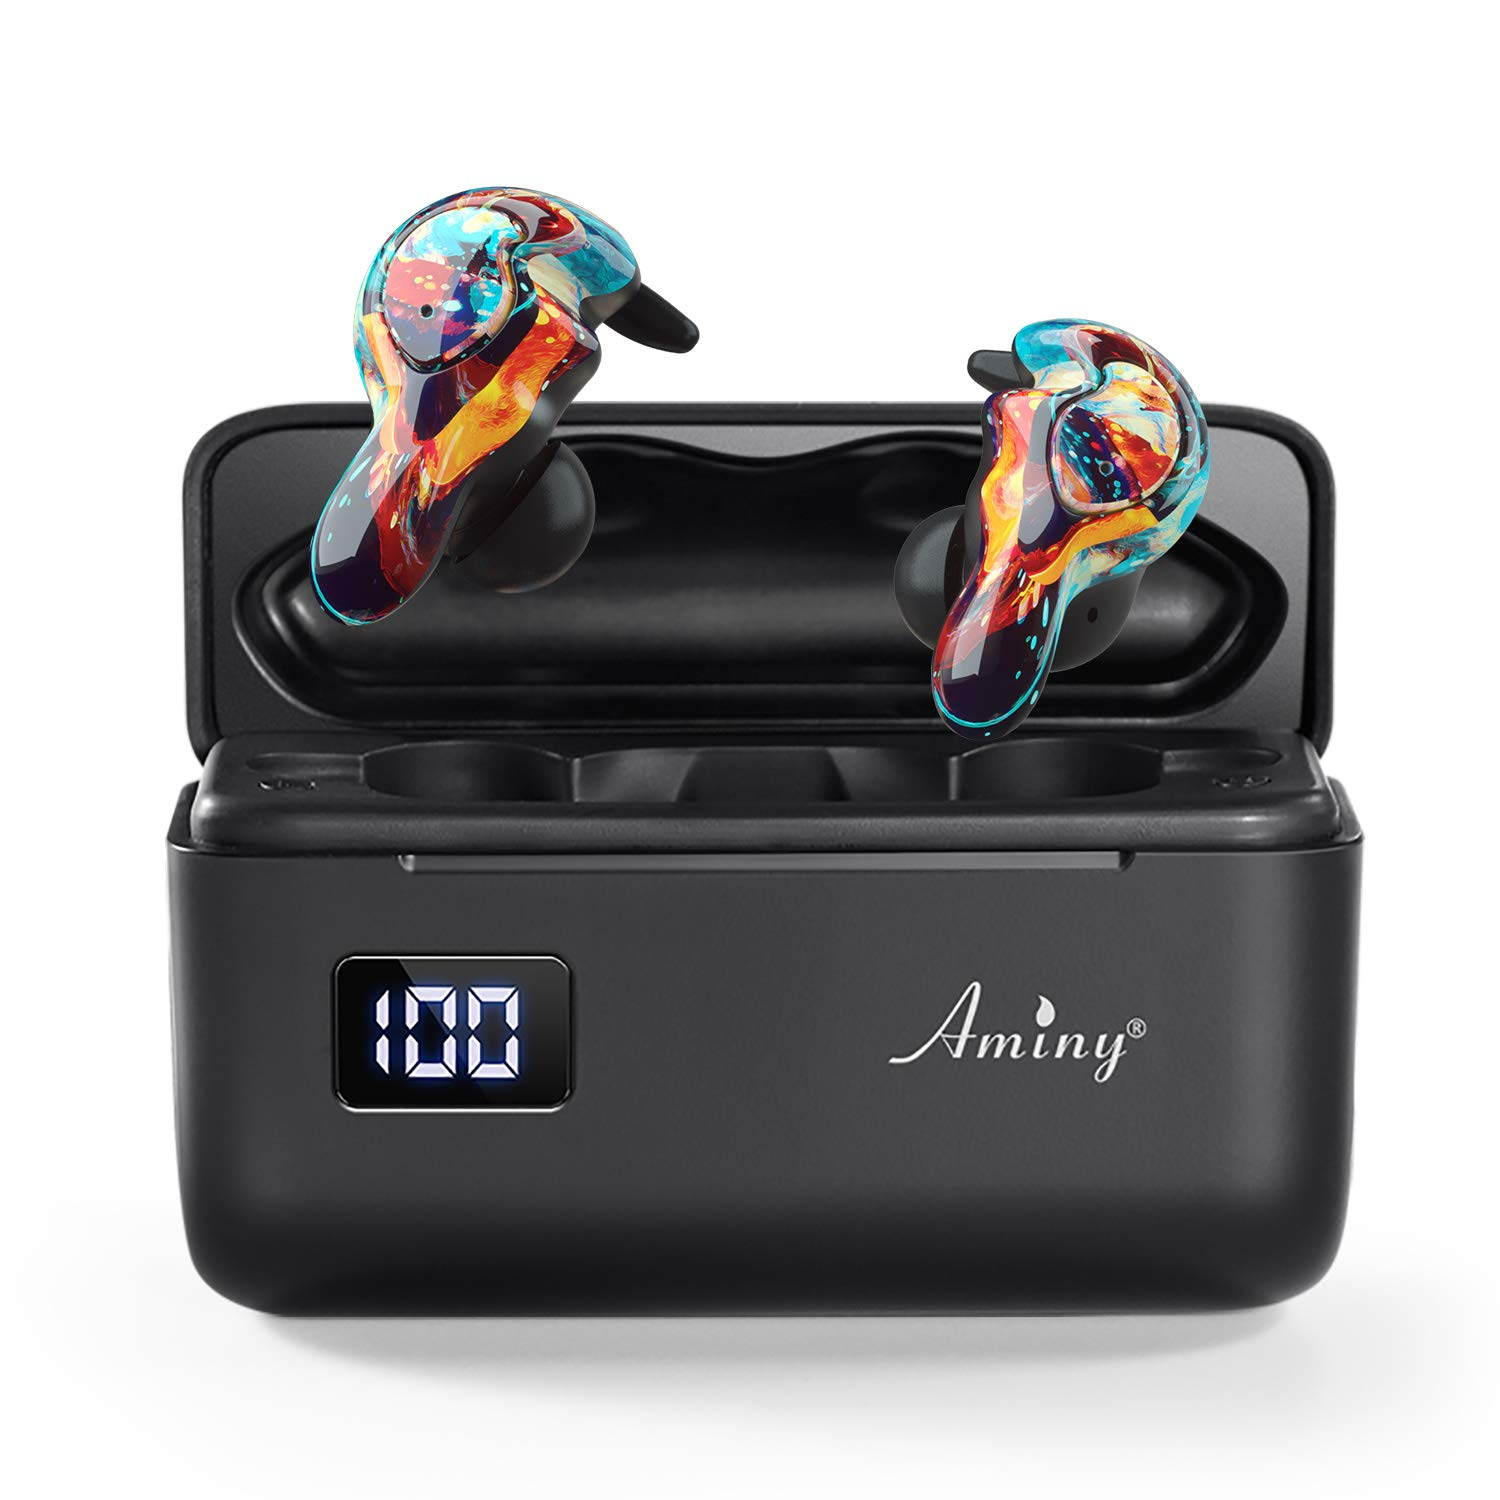 Auriculares Earbuds Inalambricos AMINY Waterproof IPX7 Firew